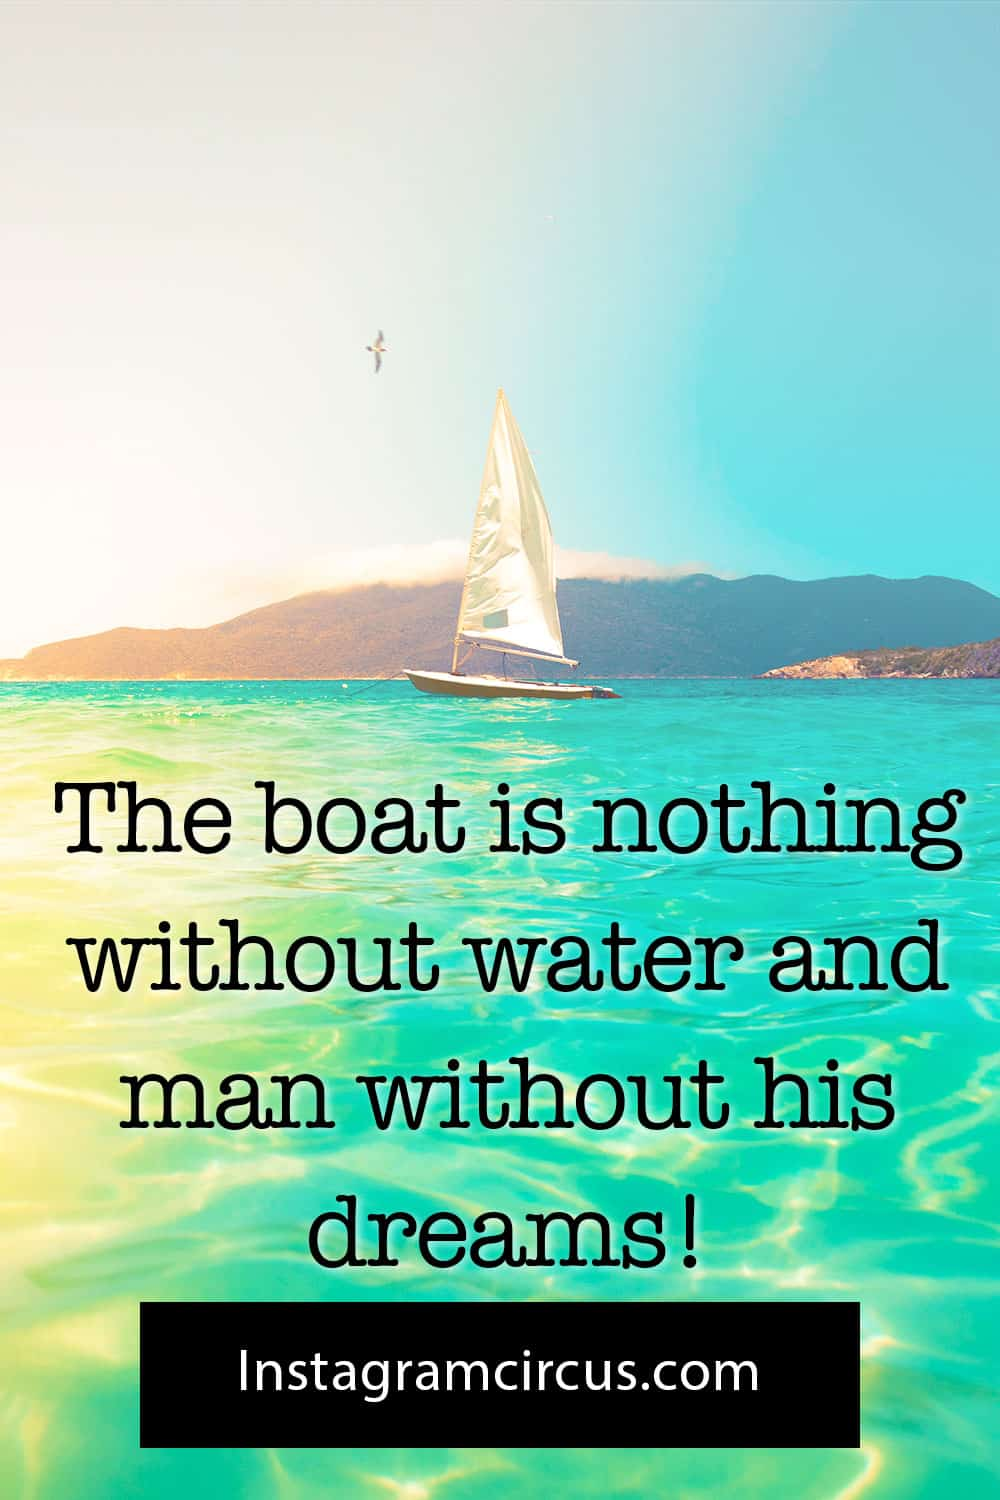 The boat is nothing without water and man without his dreams!